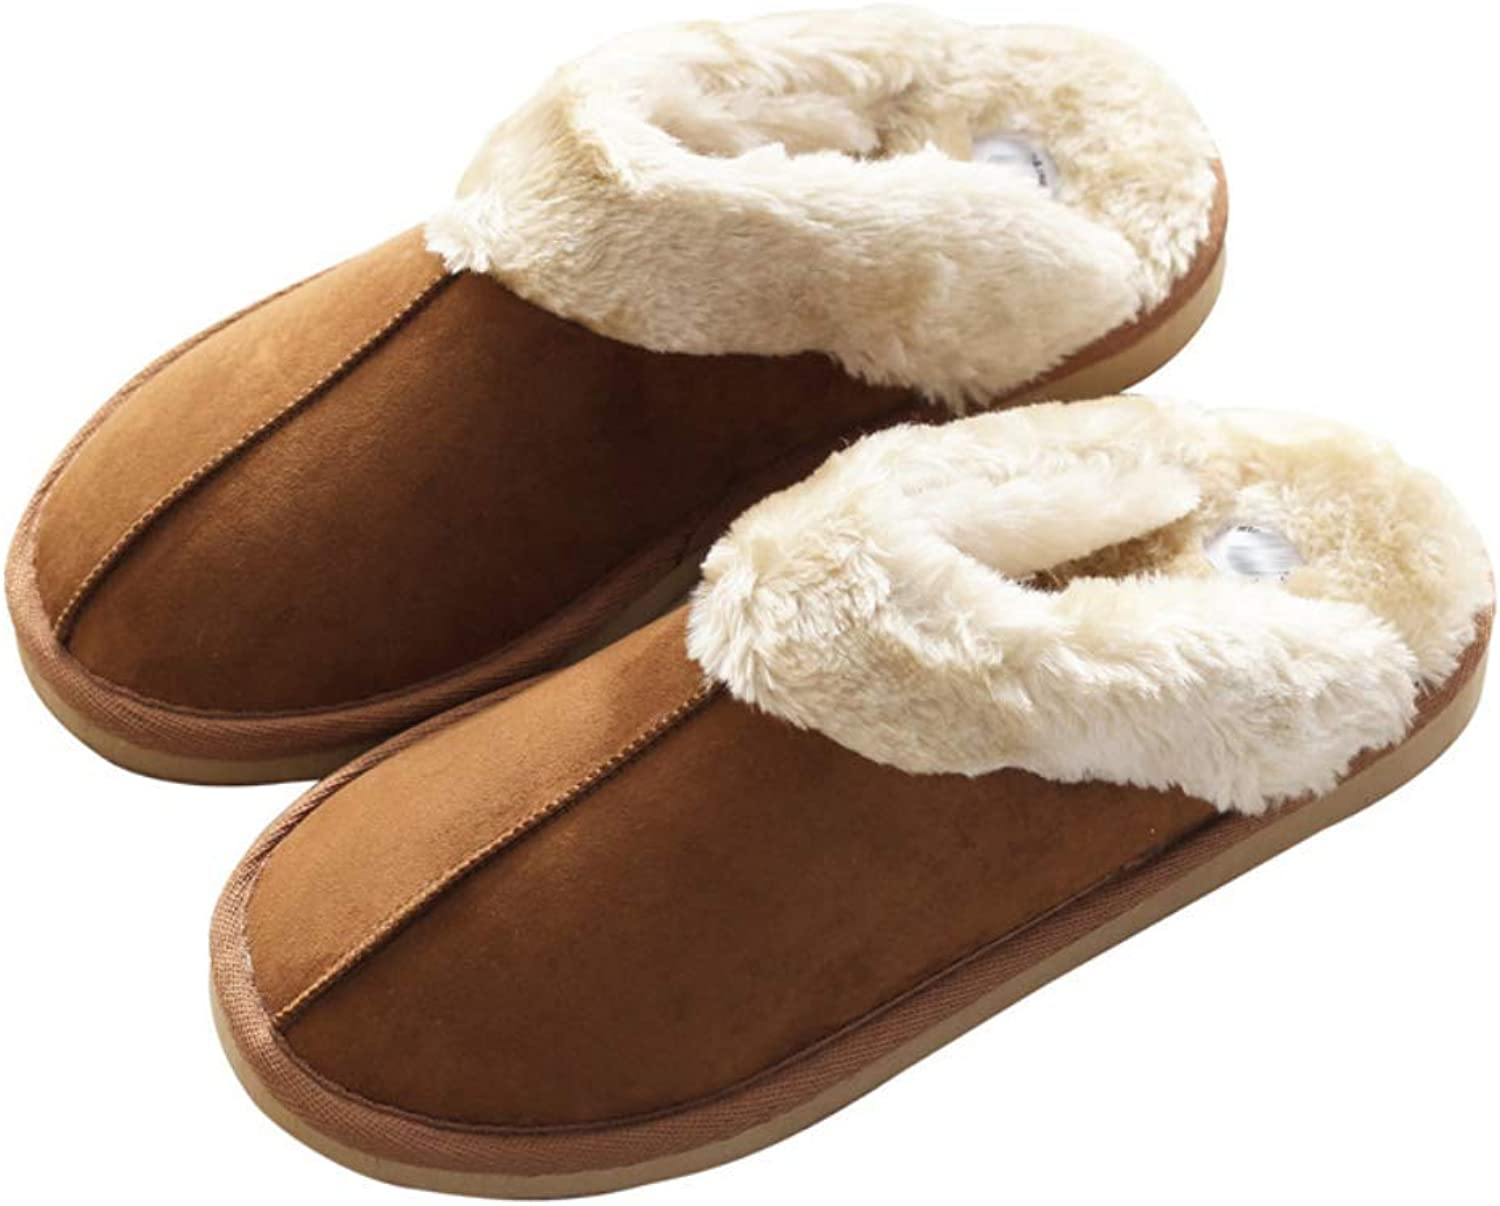 Winter Warm Home Slipper with Thickened Cotton Liner, Winter shoes for Couple, Eva Sole Anti-Slip, Minimalism Design, 3 color Optional,Brown,41 42